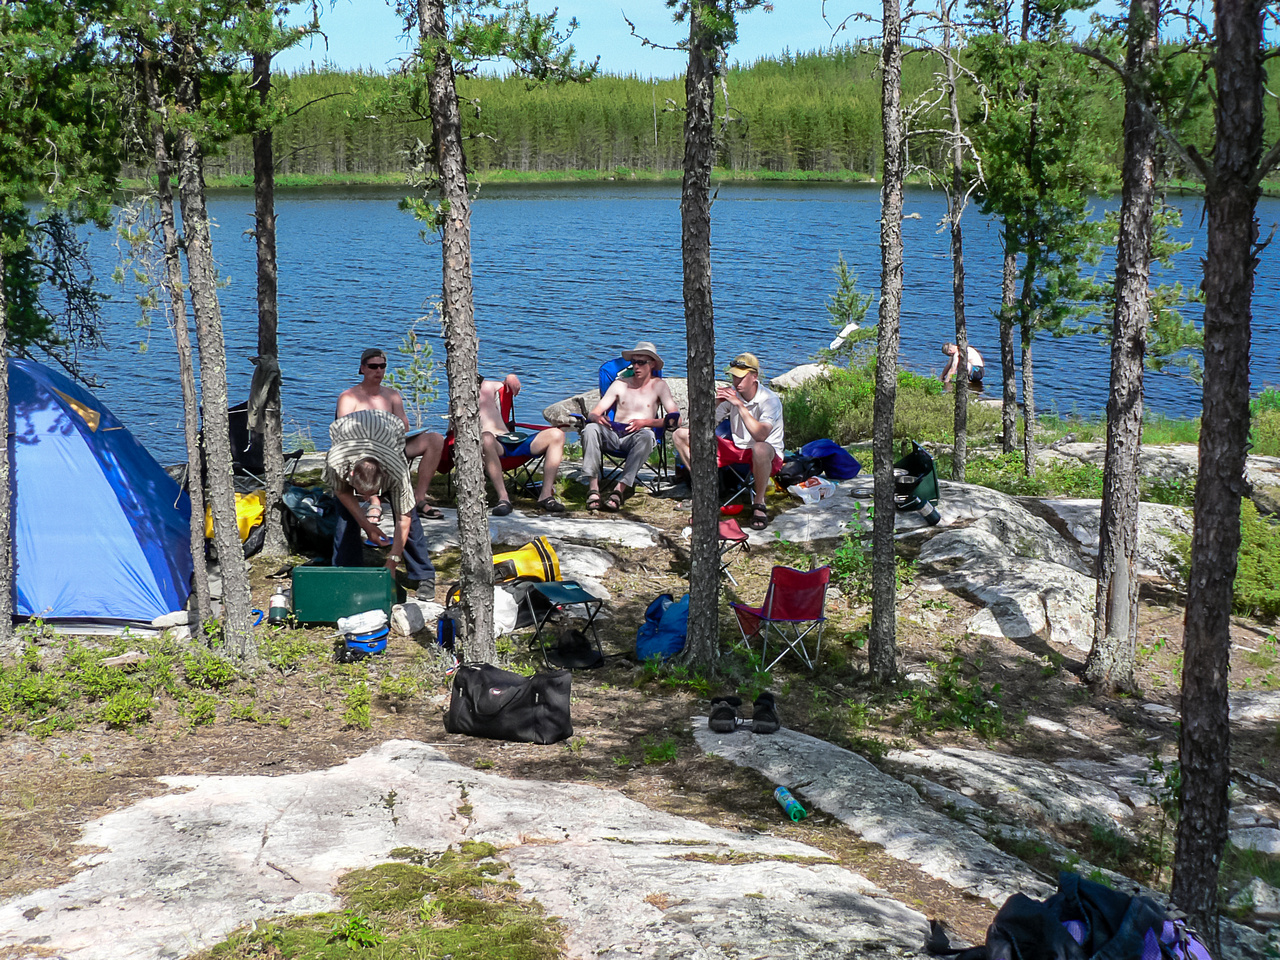 We arrive at our final camp in Jestor Lake for the trip in perfect weather / conditions again.